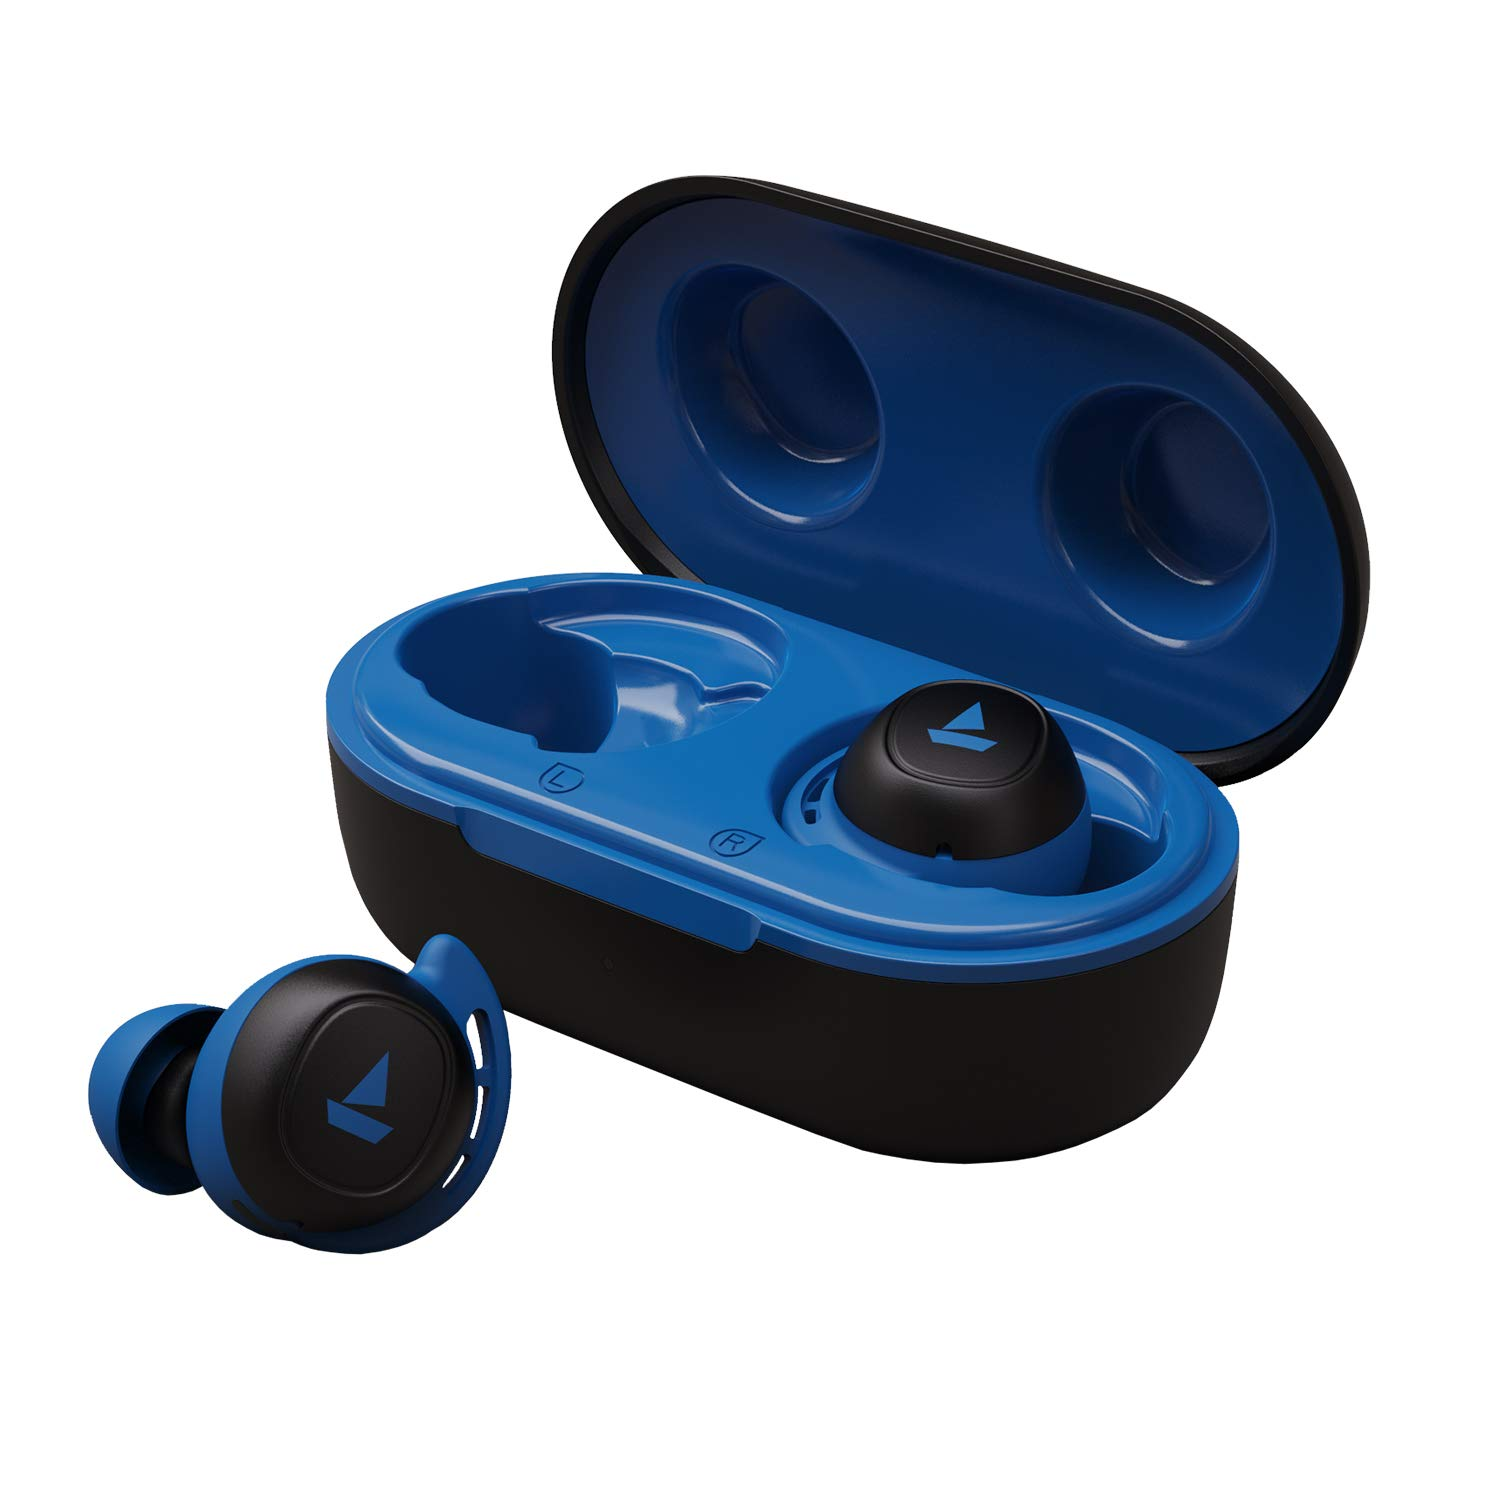 boat airdopes 441 earbuds for ipl 2020